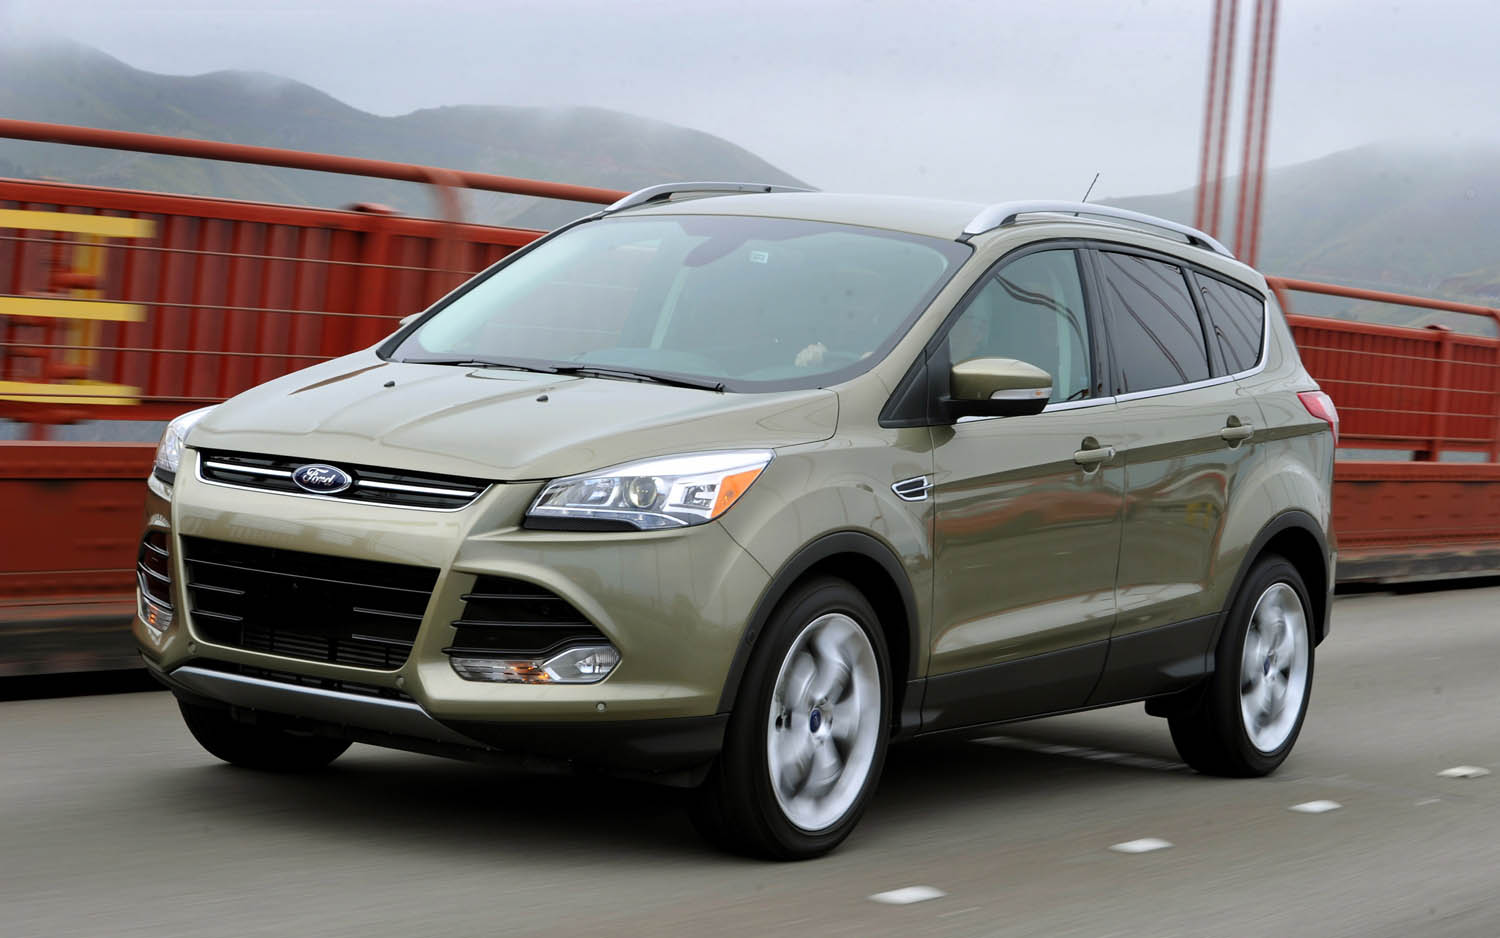 Ford Escape #2